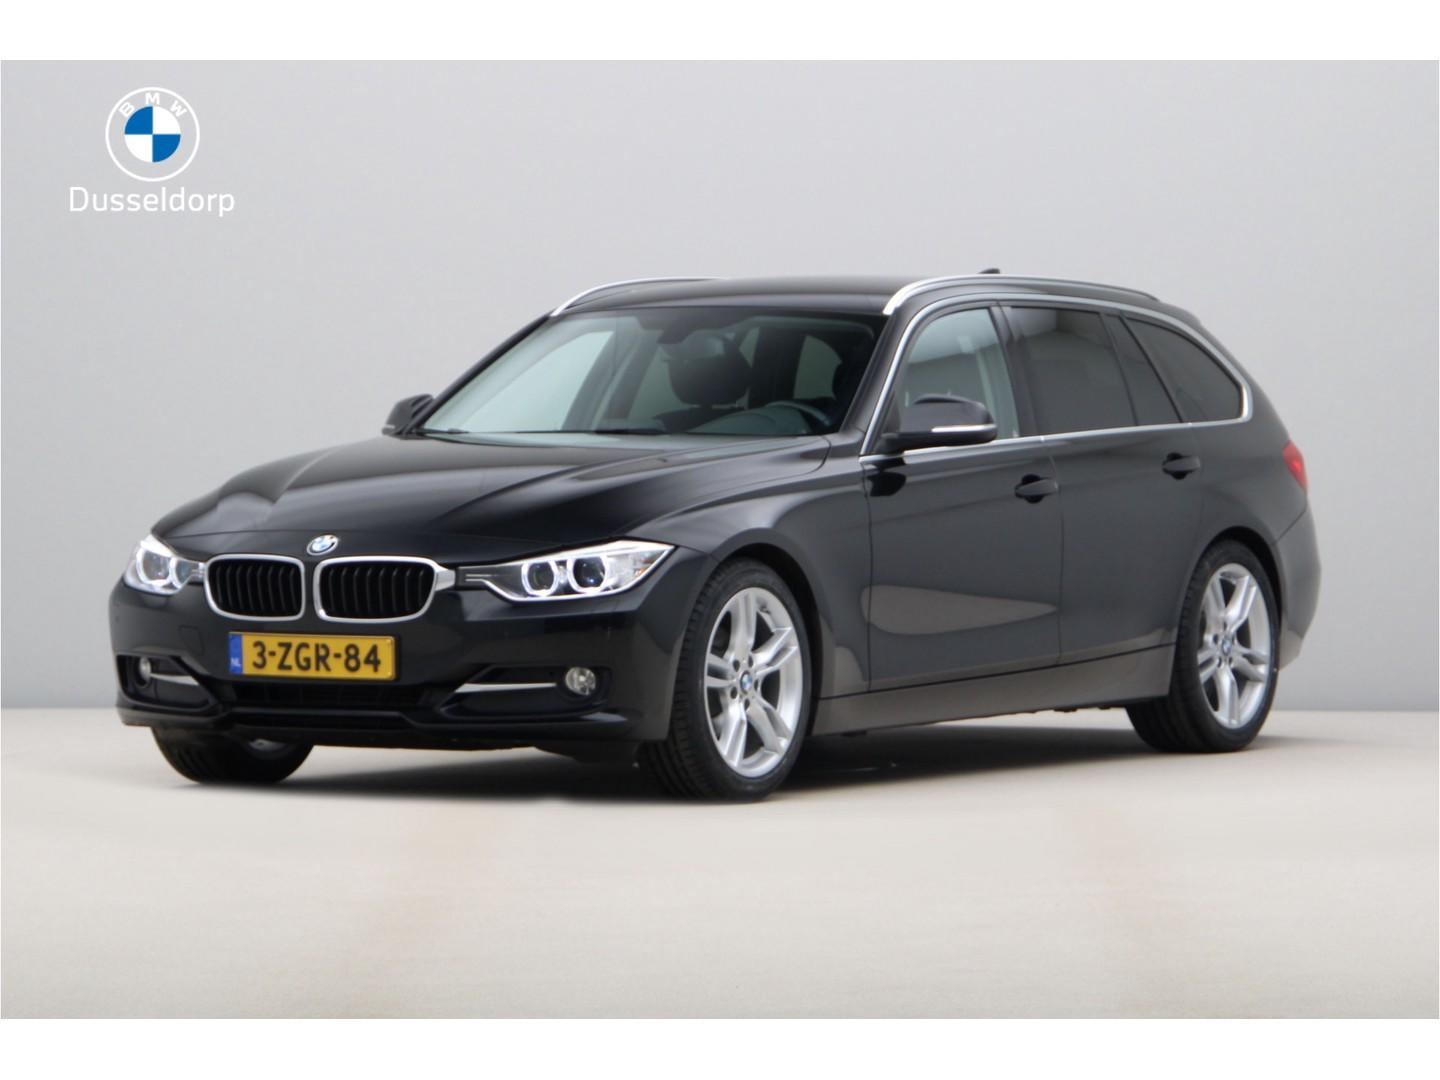 Bmw 3 serie Touring 320d ede/ executive/ sportline/ 18inch/ getint glas